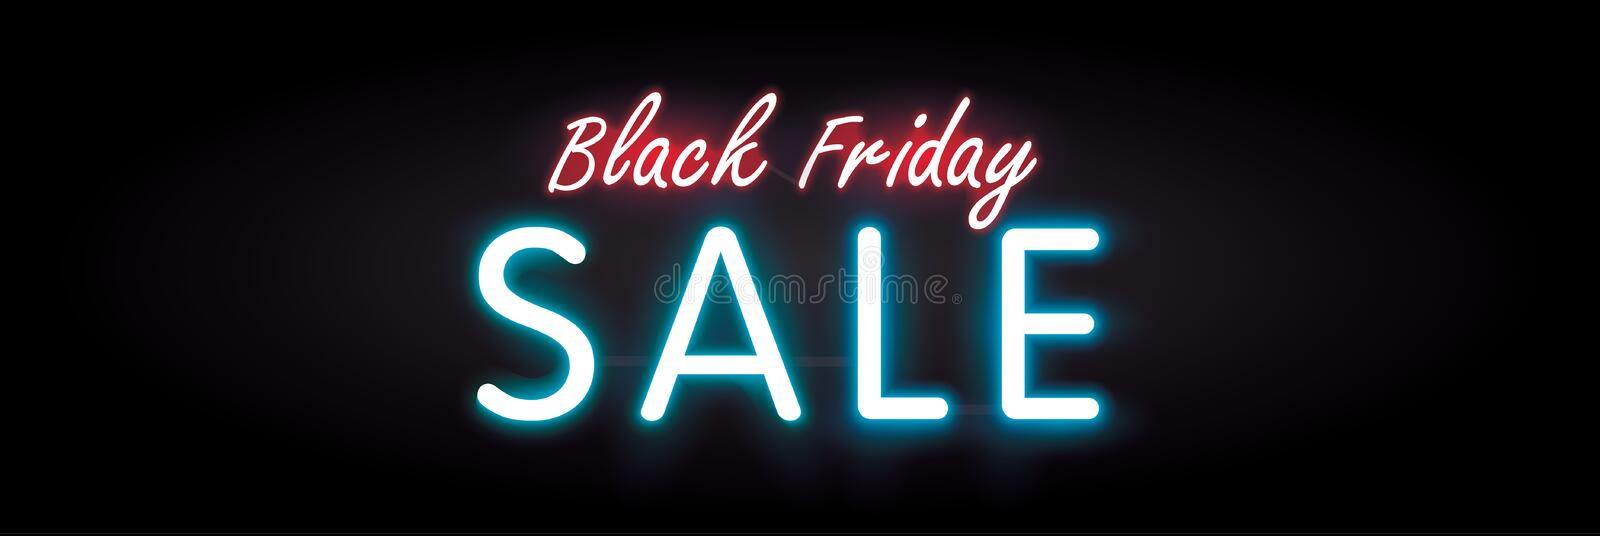 Black Friday sale neon style heading design for banner or poster stock illustration